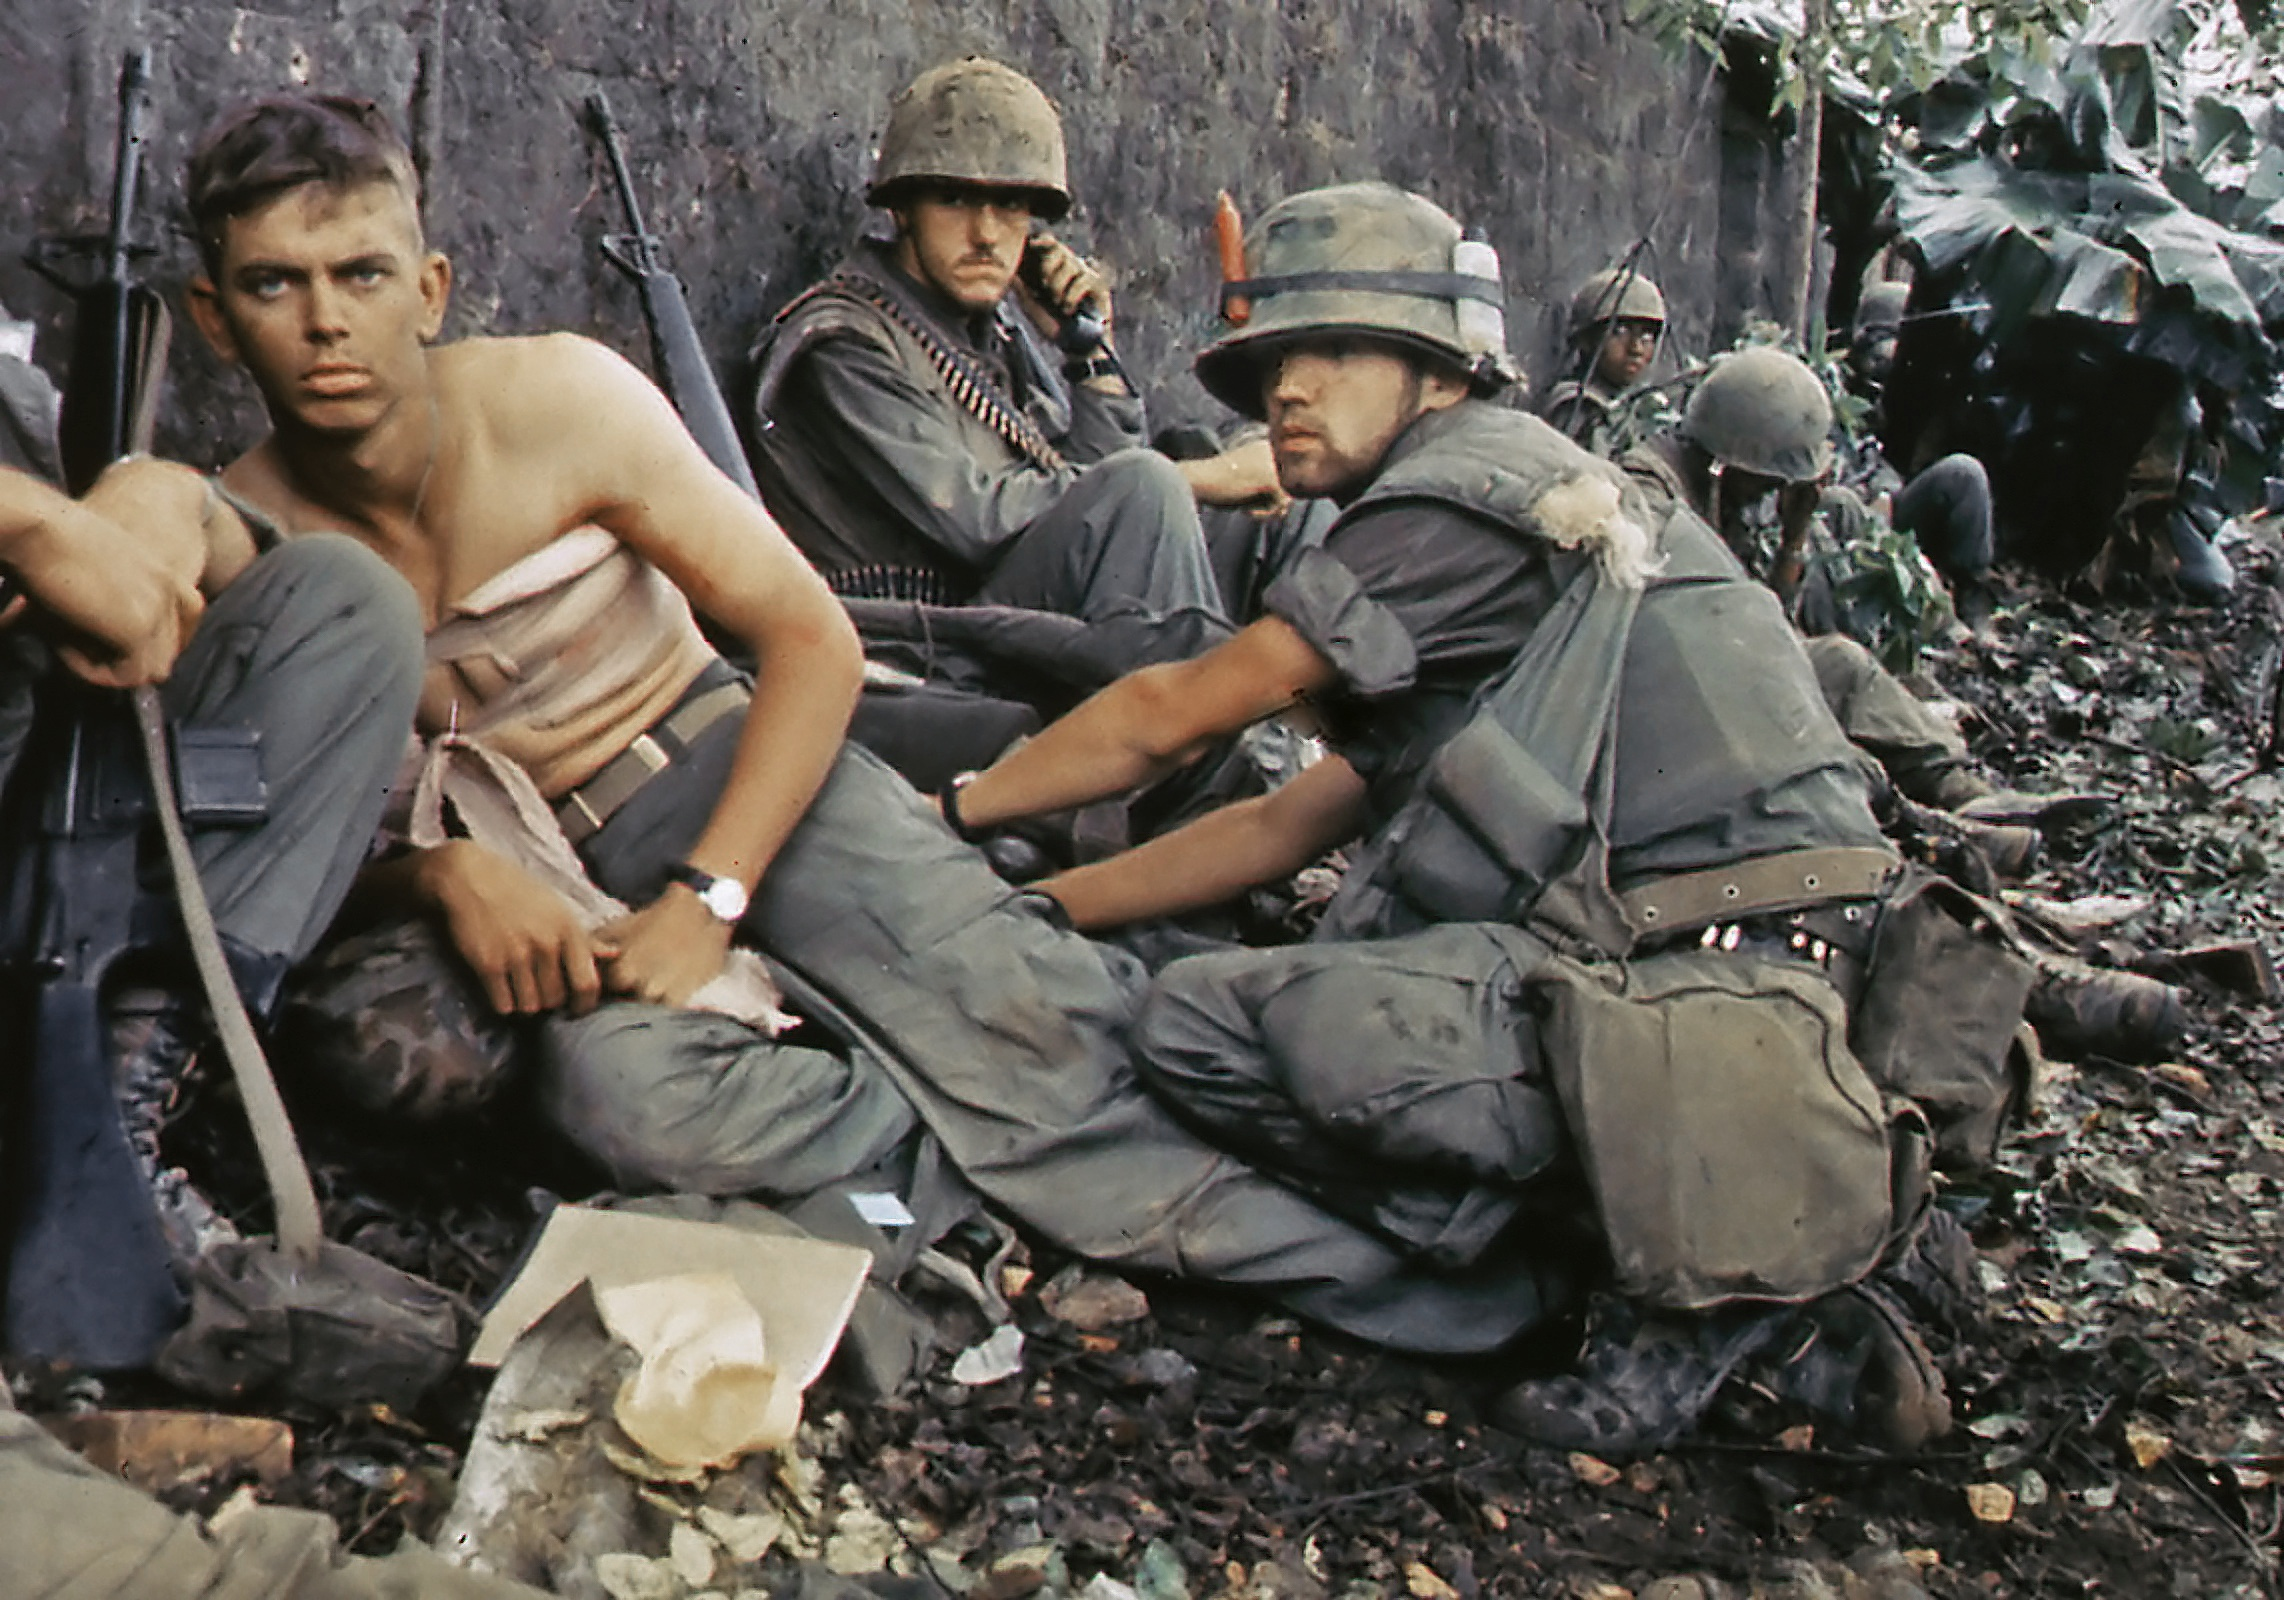 OperationHueCity1967wounded.jpg